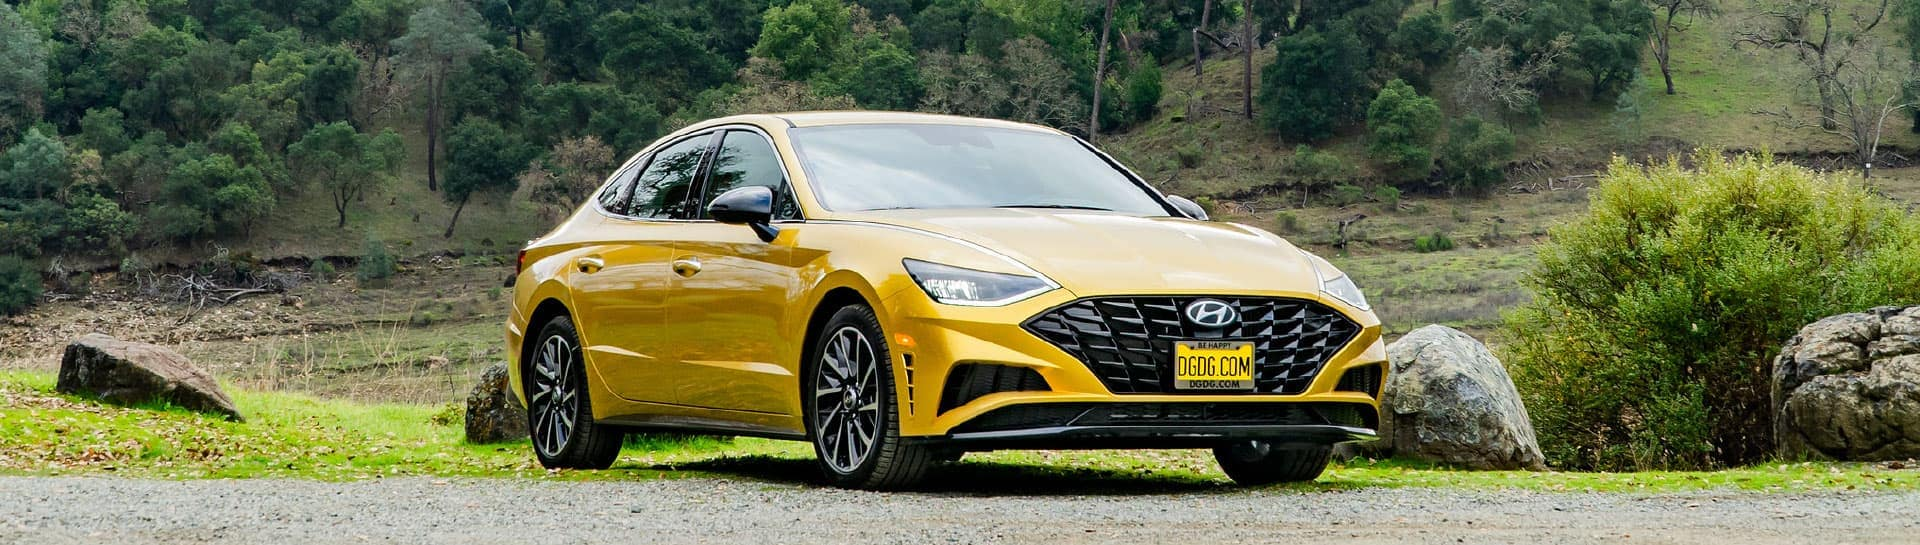 Yellow Hyundai sedan